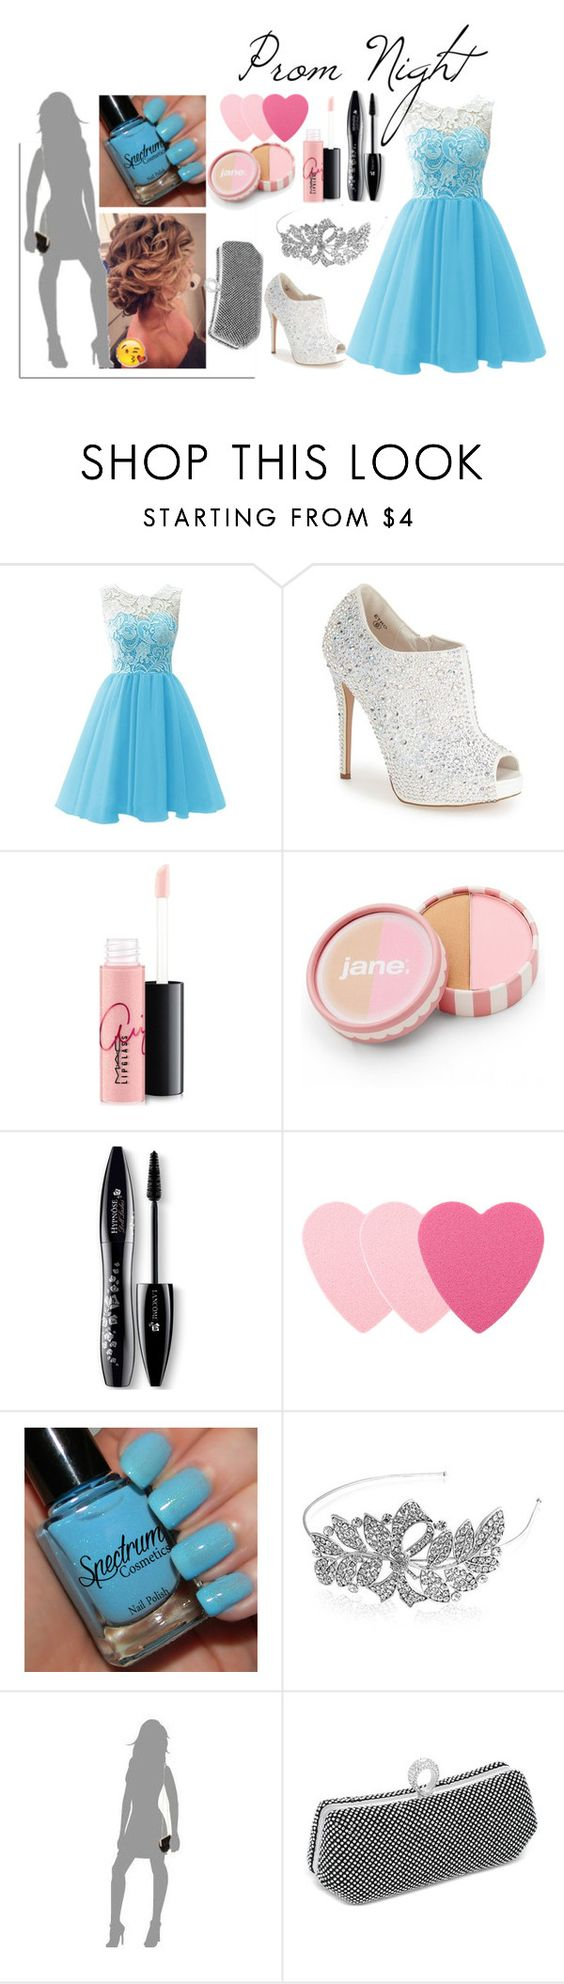 """Prom (contest)"" by ballet-pointe-turnout ❤ liked on Polyvore featuring Lauren Lorraine, MAC Cosmetics, jane, Lancôme, Sephora Collection, Bling Jewelry, La Regale, Jon Richard, women's clothing and women"